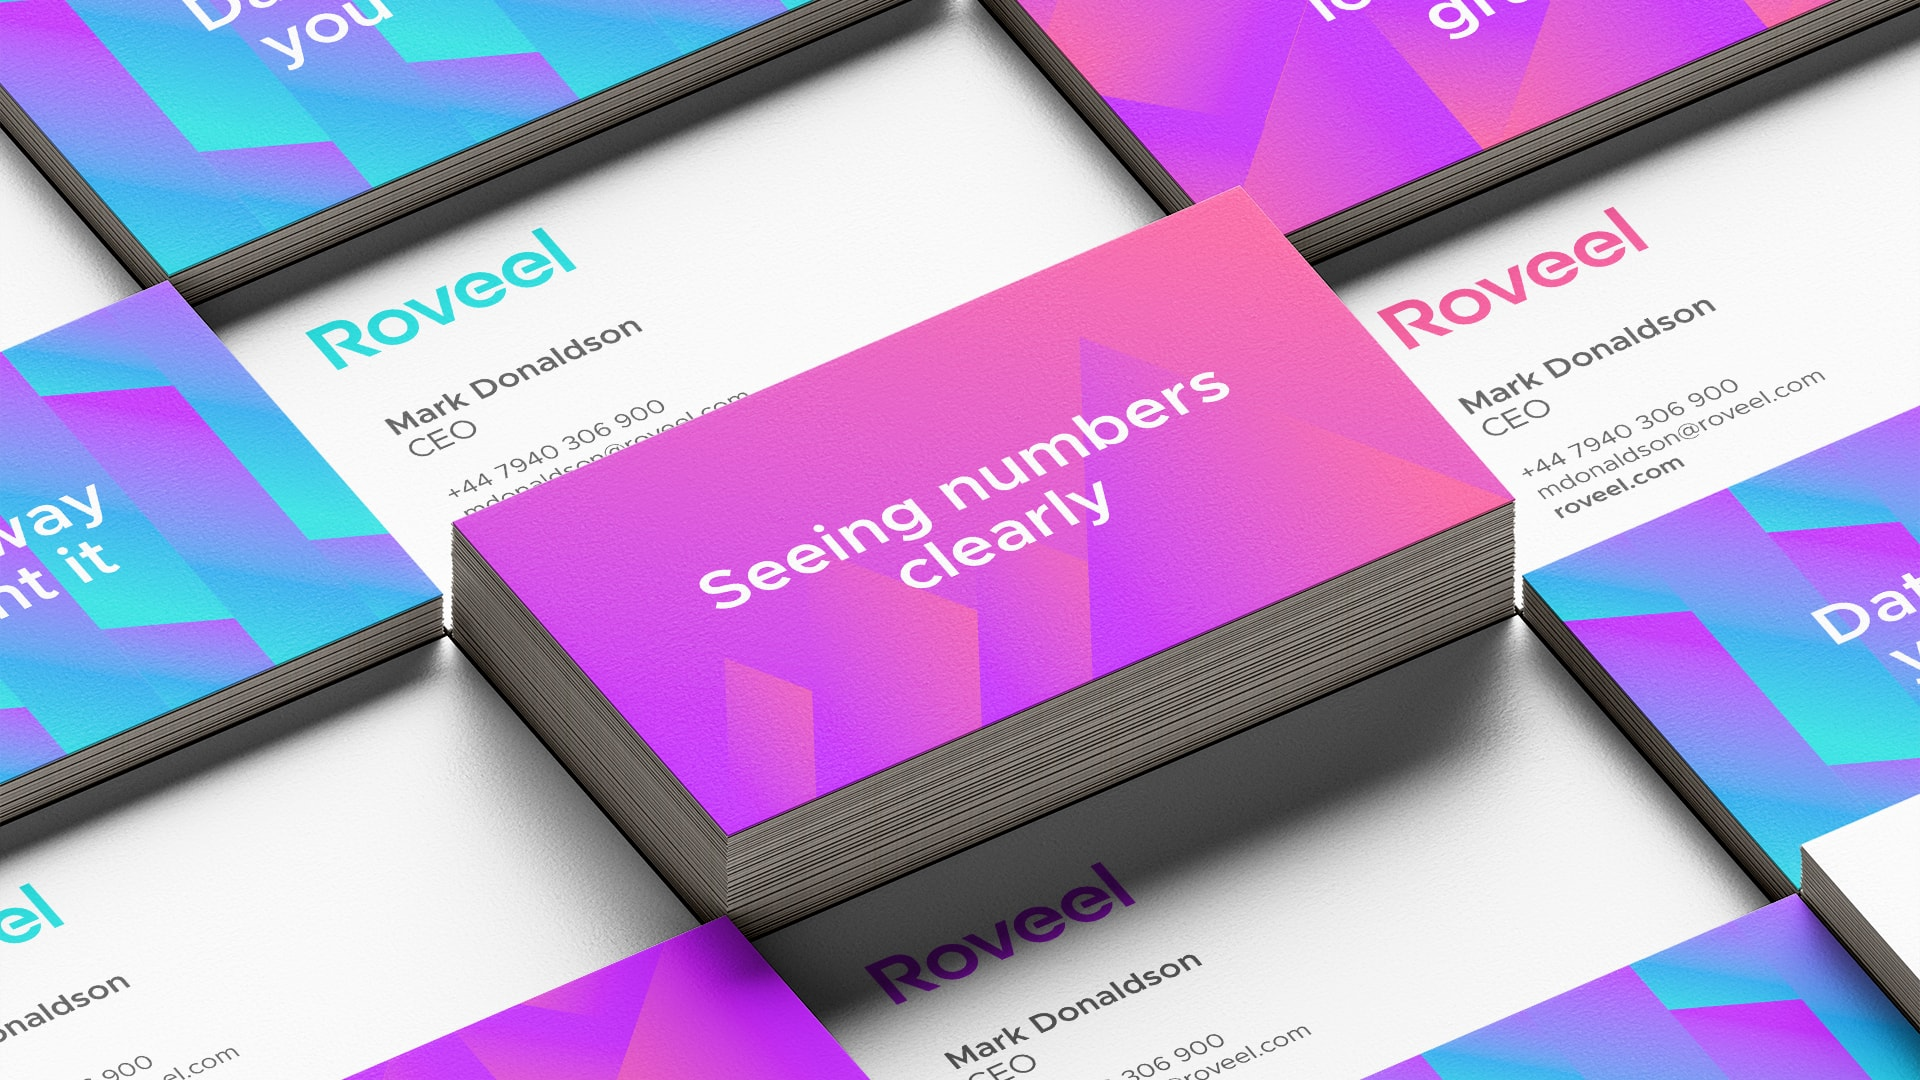 Roveel branded business cards showing front and back designs